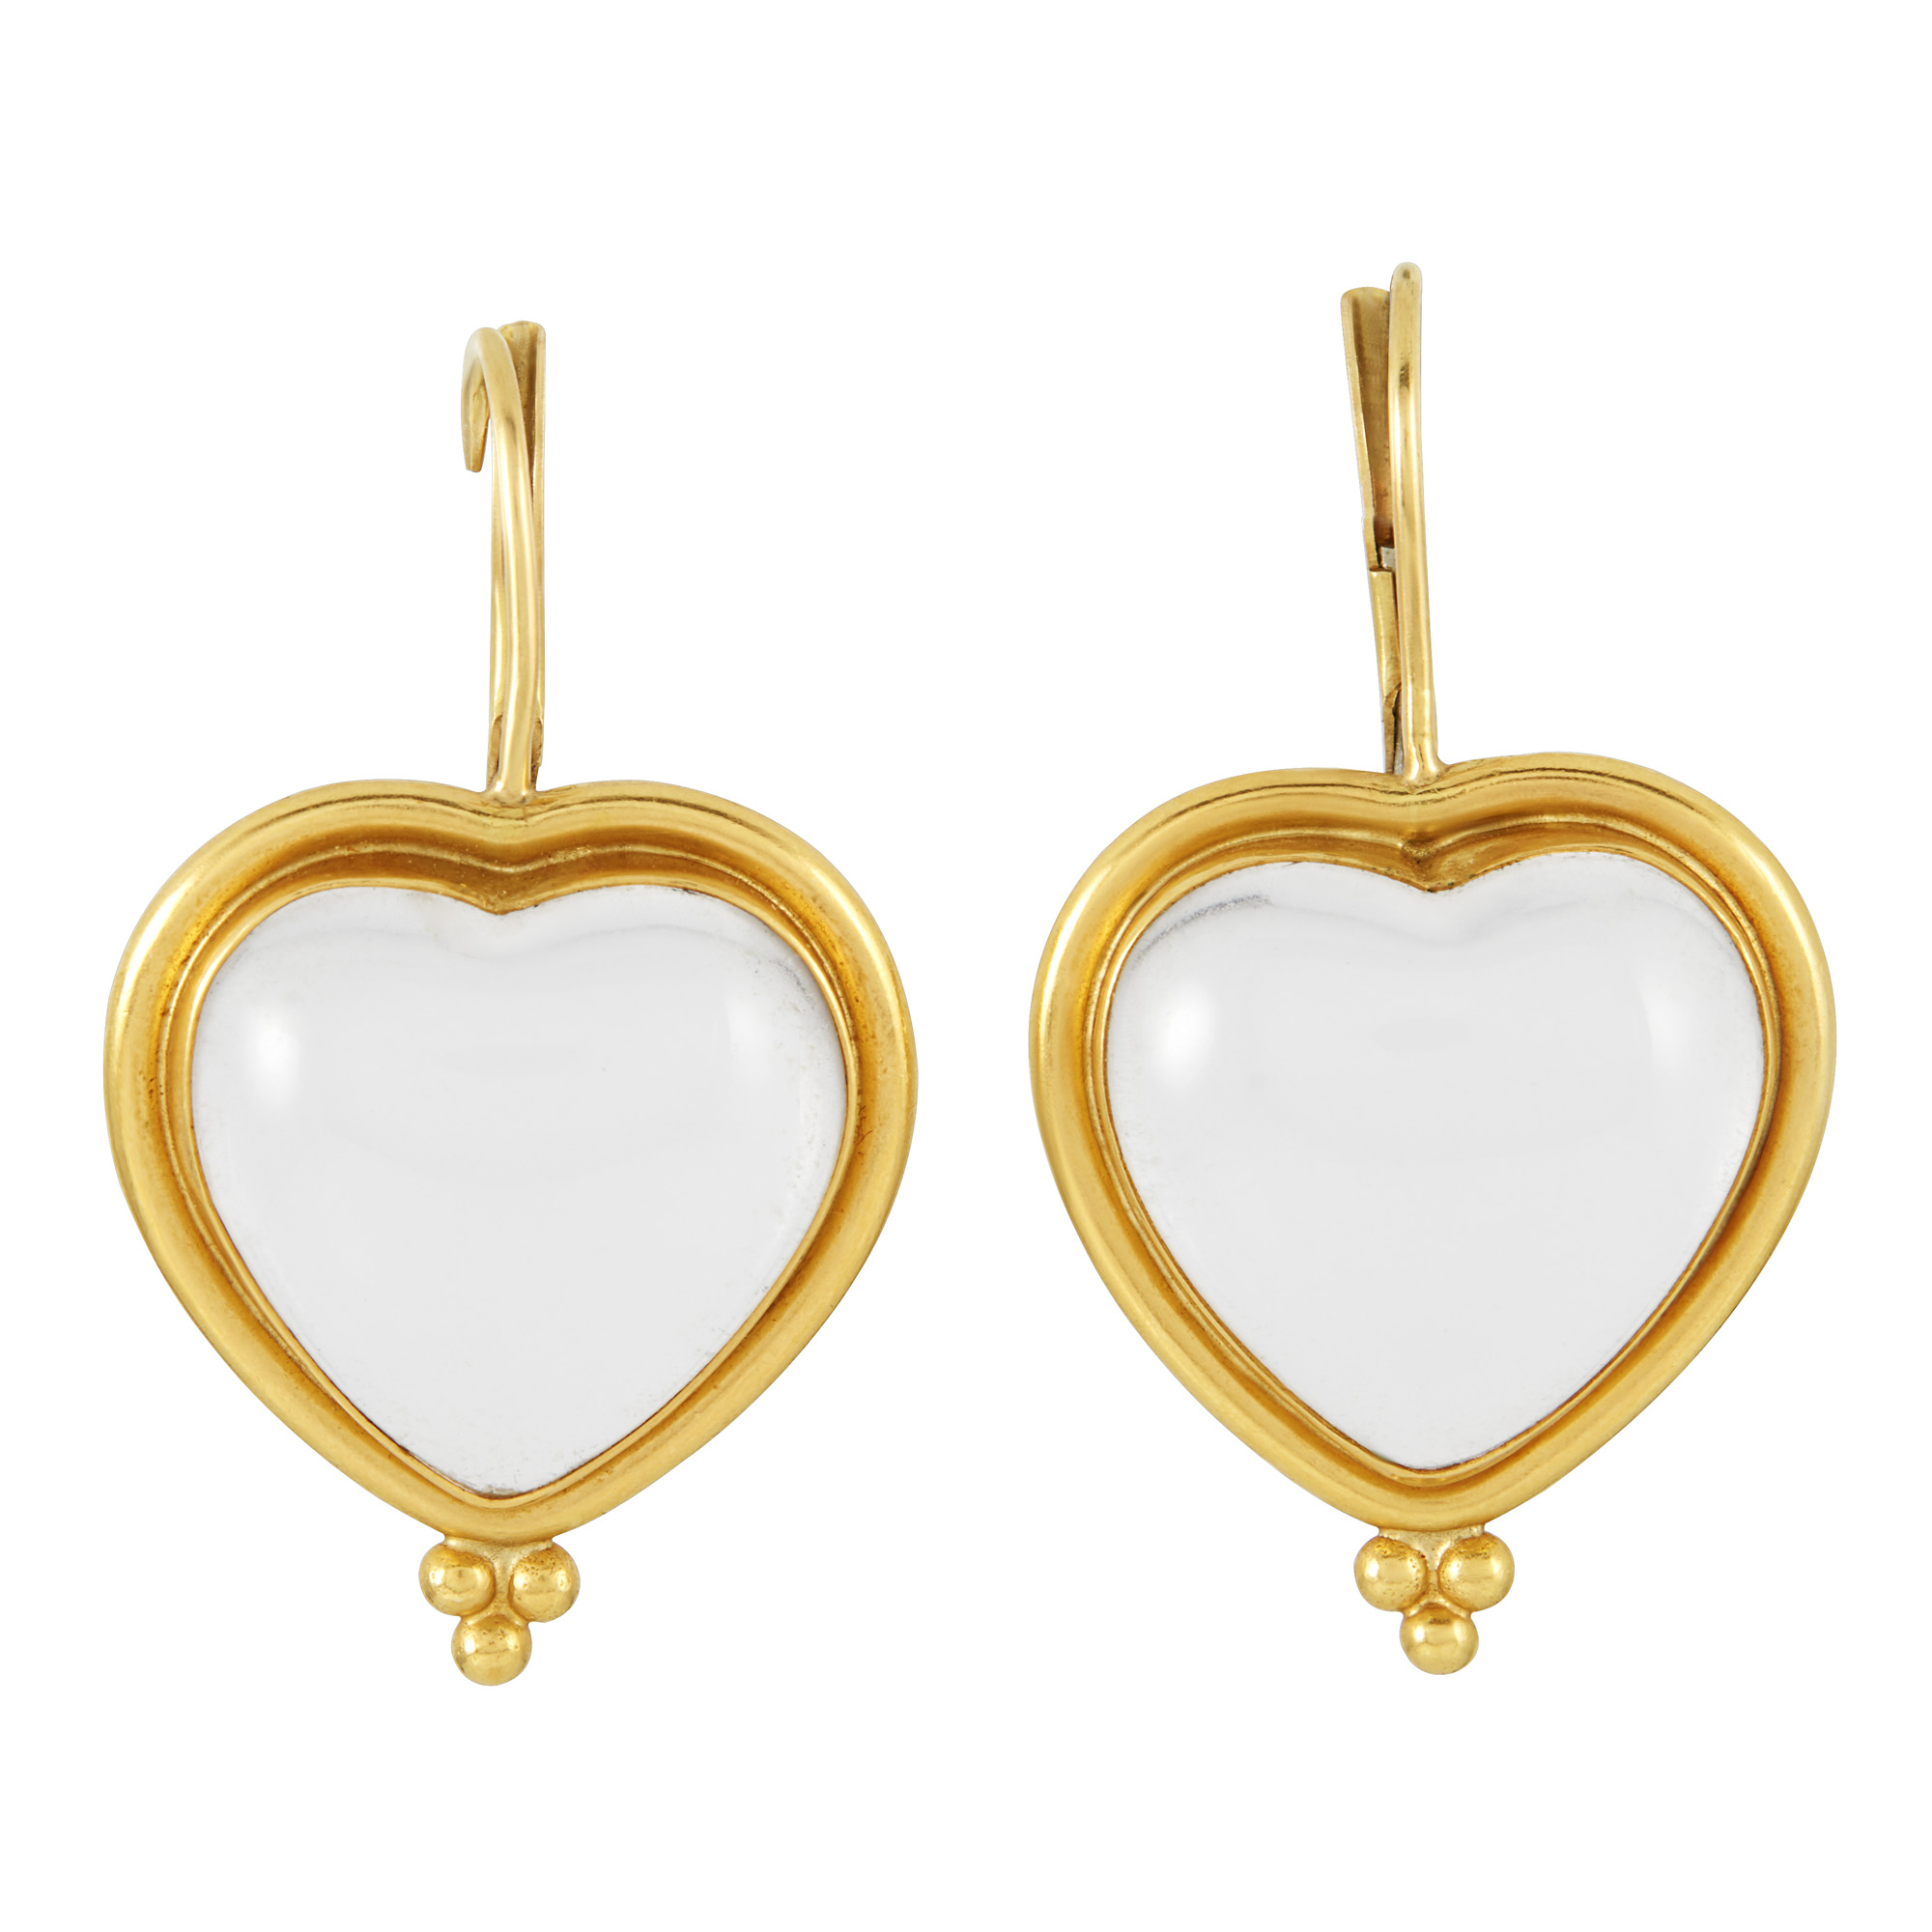 Lot image - Pair of High Karat Gold and Rock Crystal Heart Pendant Earrings, Temple St. Clair